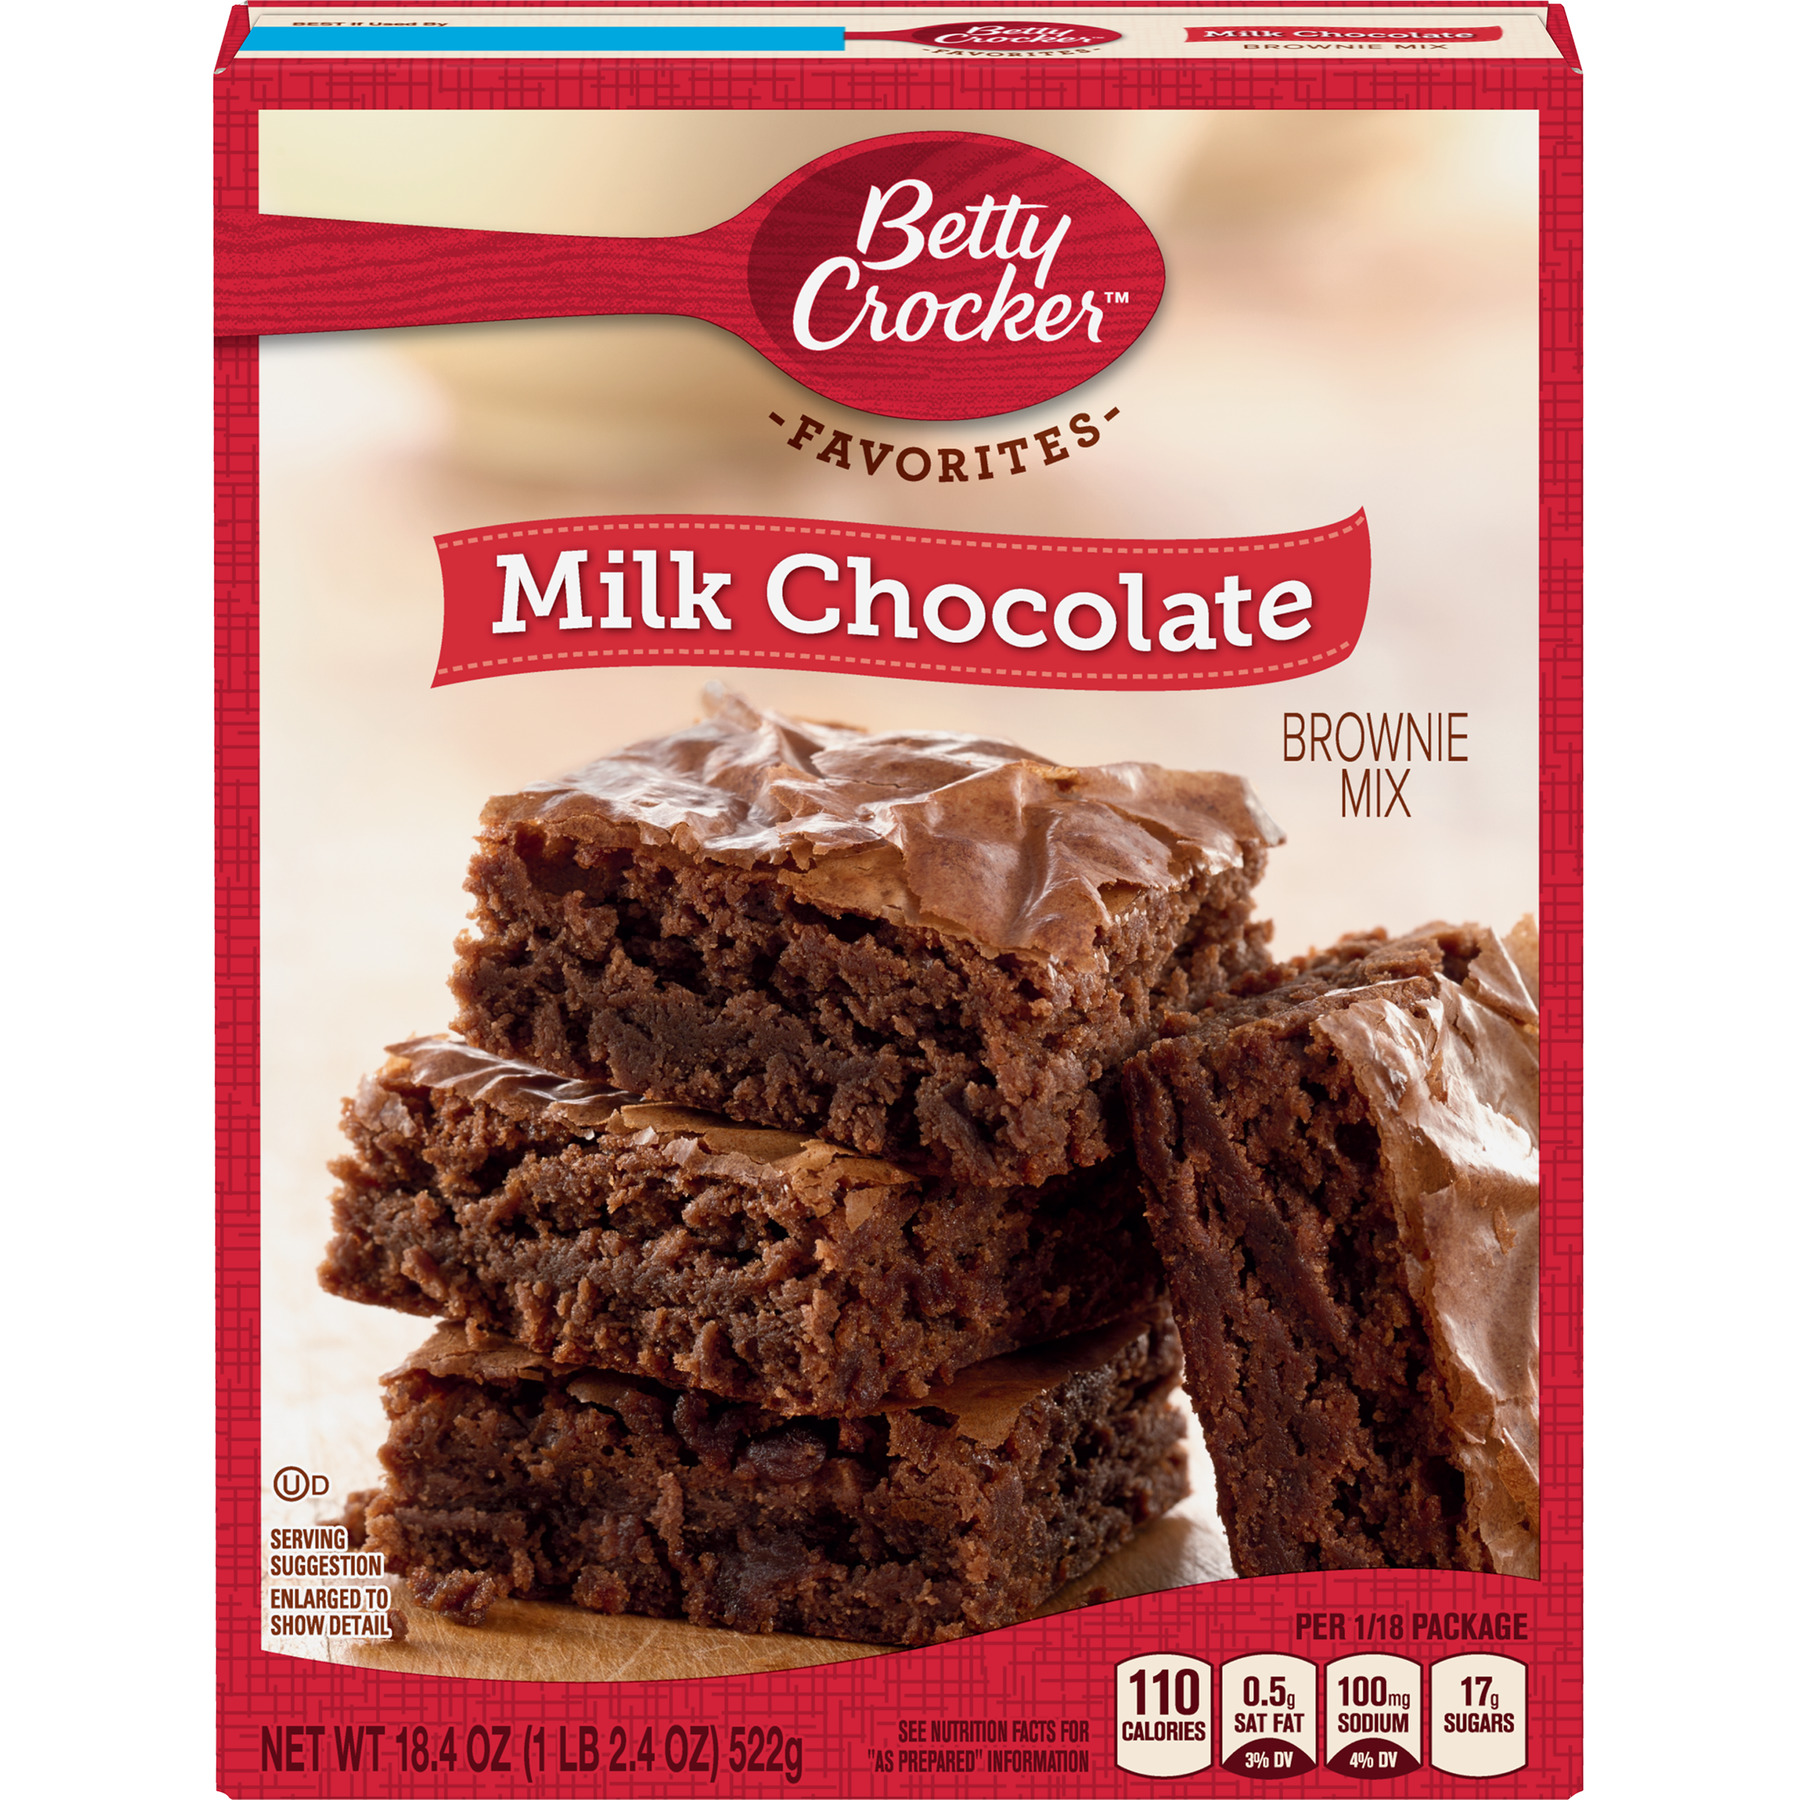 (2 Pack) Betty Crocker Milk Chocolate Brownie Mix Family Size, 18.4 oz